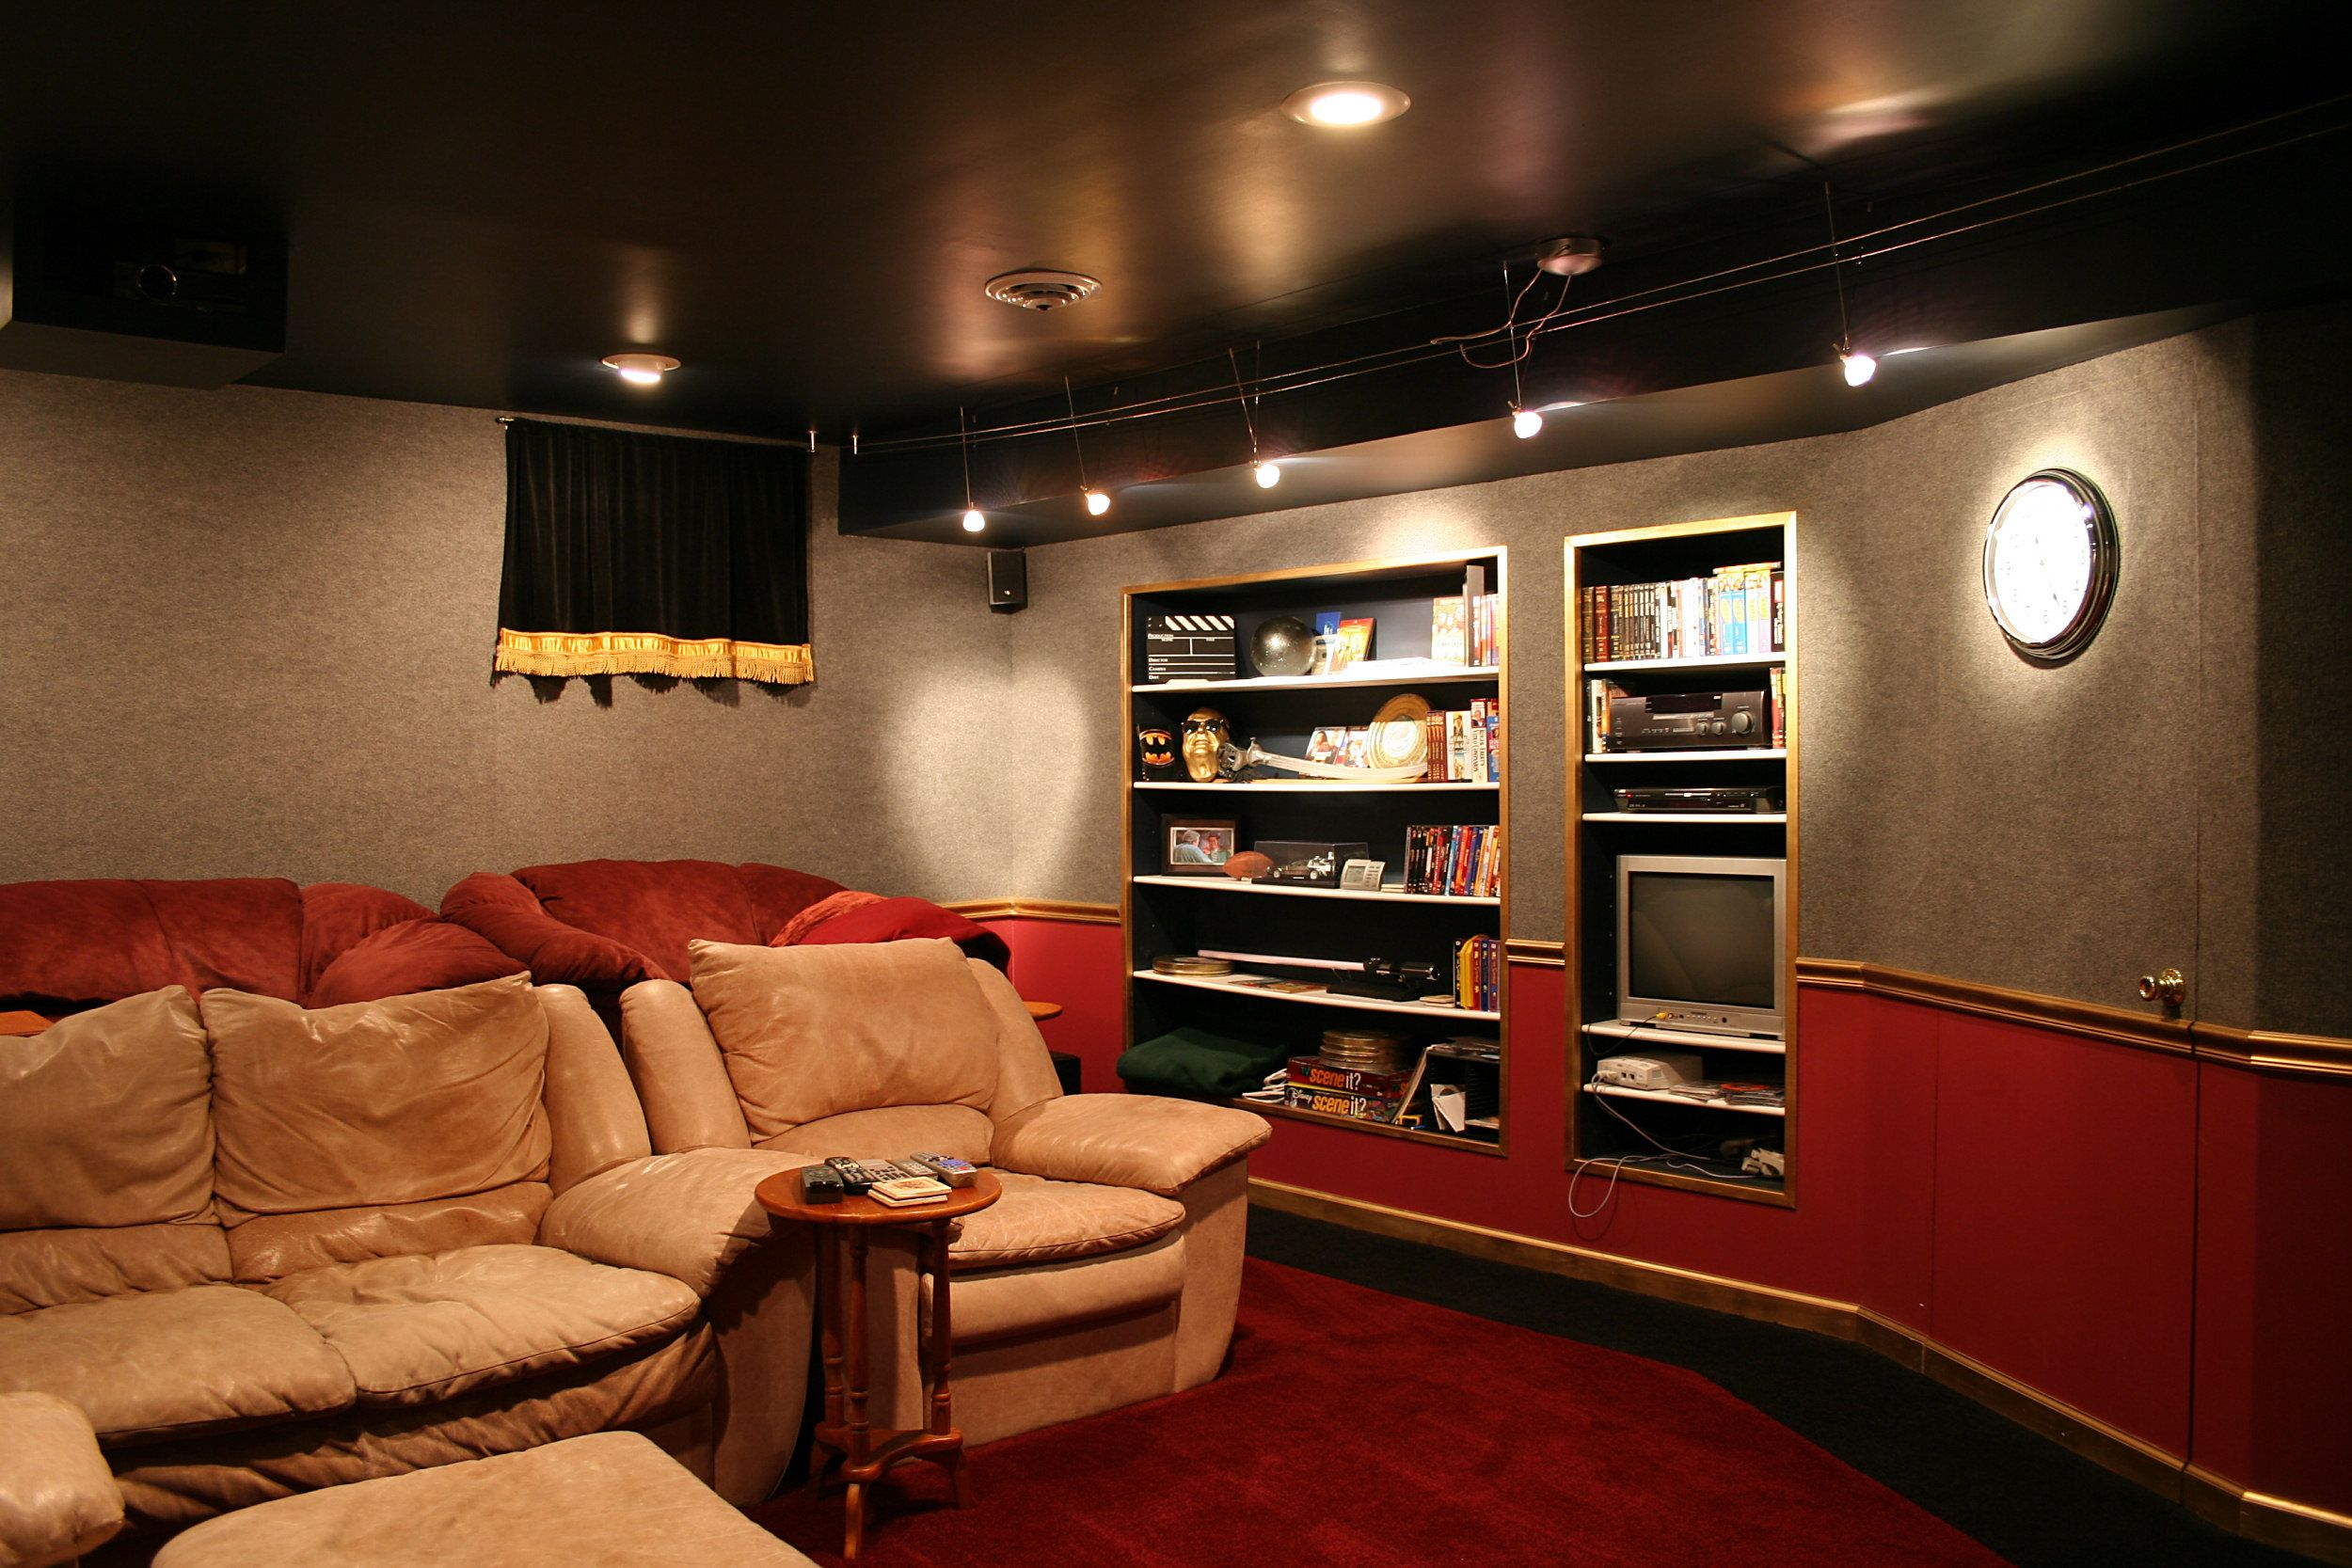 Home cinema - Wikipedia, the free encyclopedia I can't see dark ceilings in